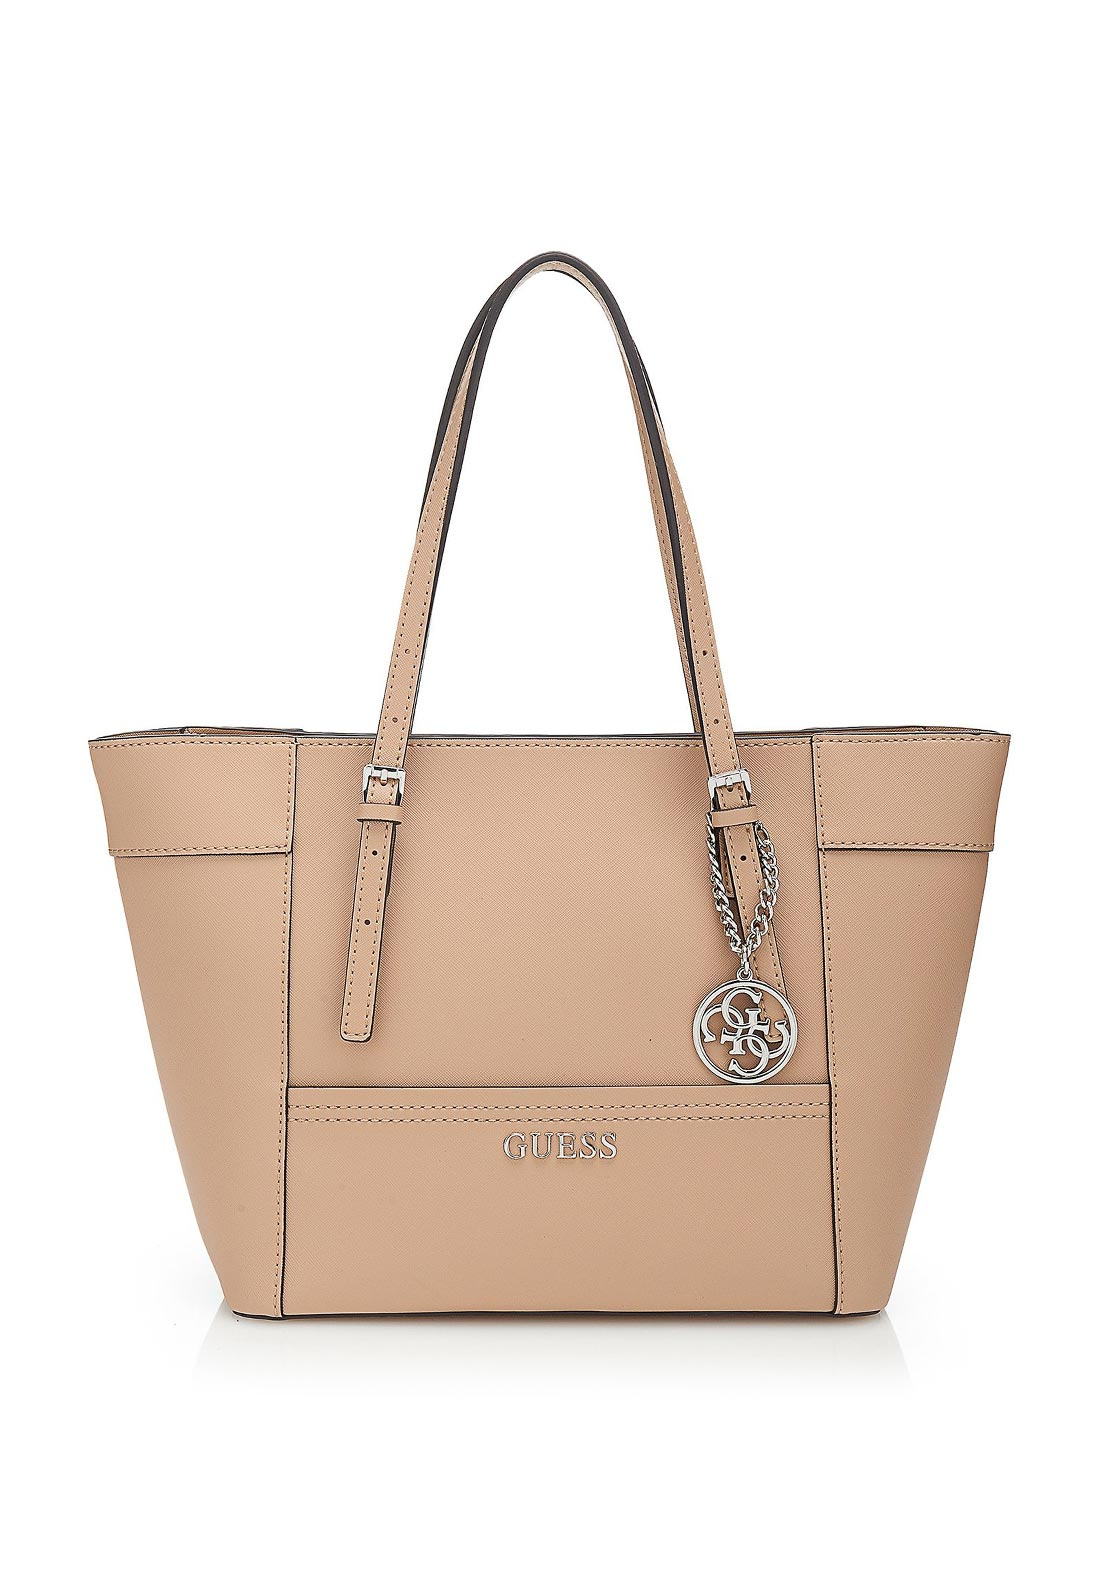 Guess Delaney Classic Tote Bag, Tan